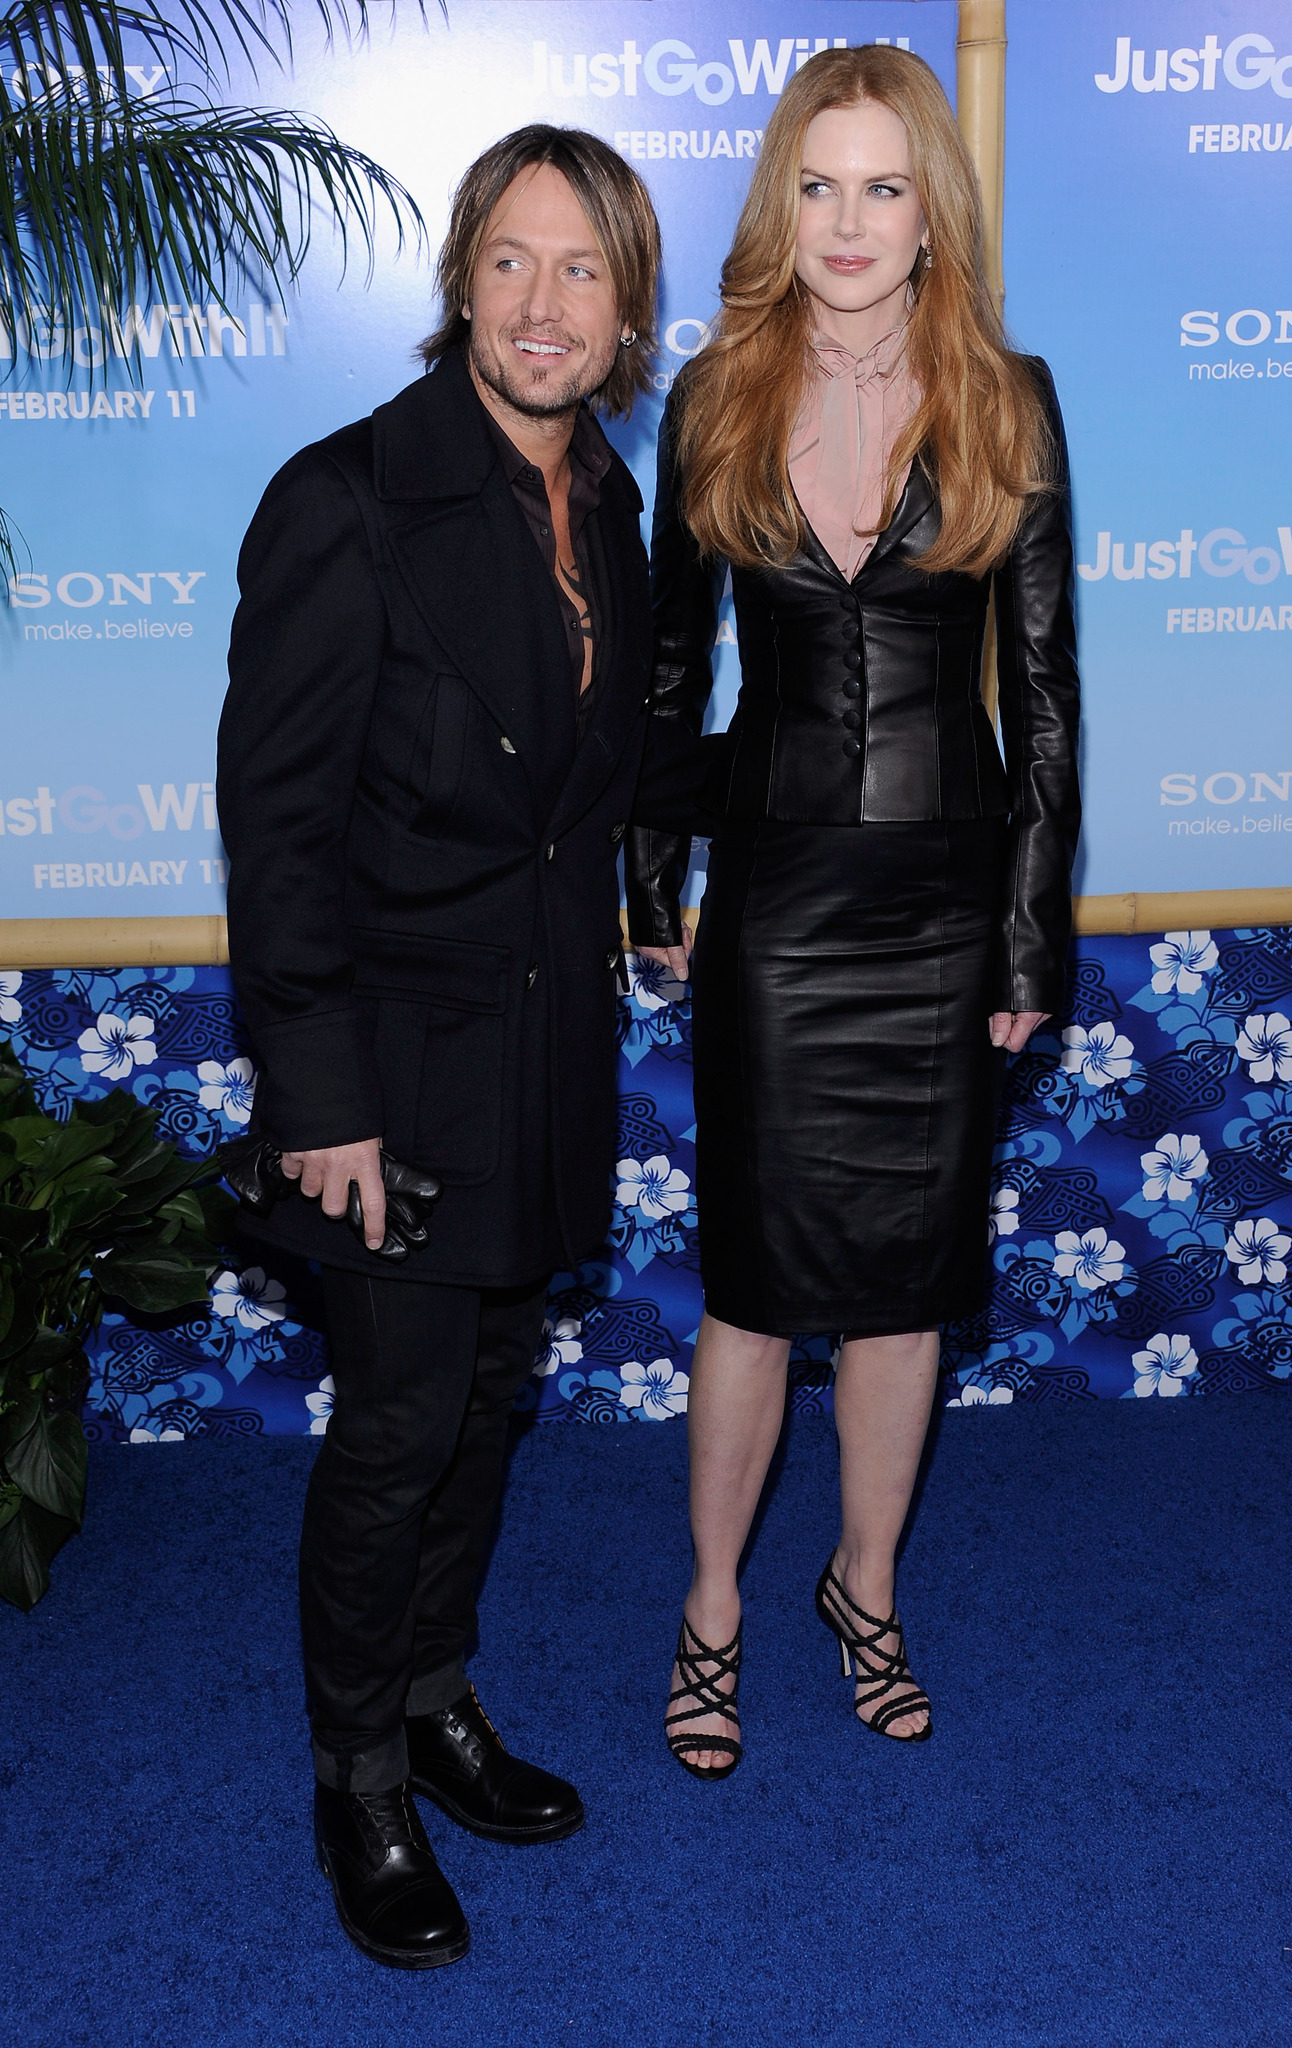 Nicole Kidman and Keith Urban at an event for Just Go with It (2011)